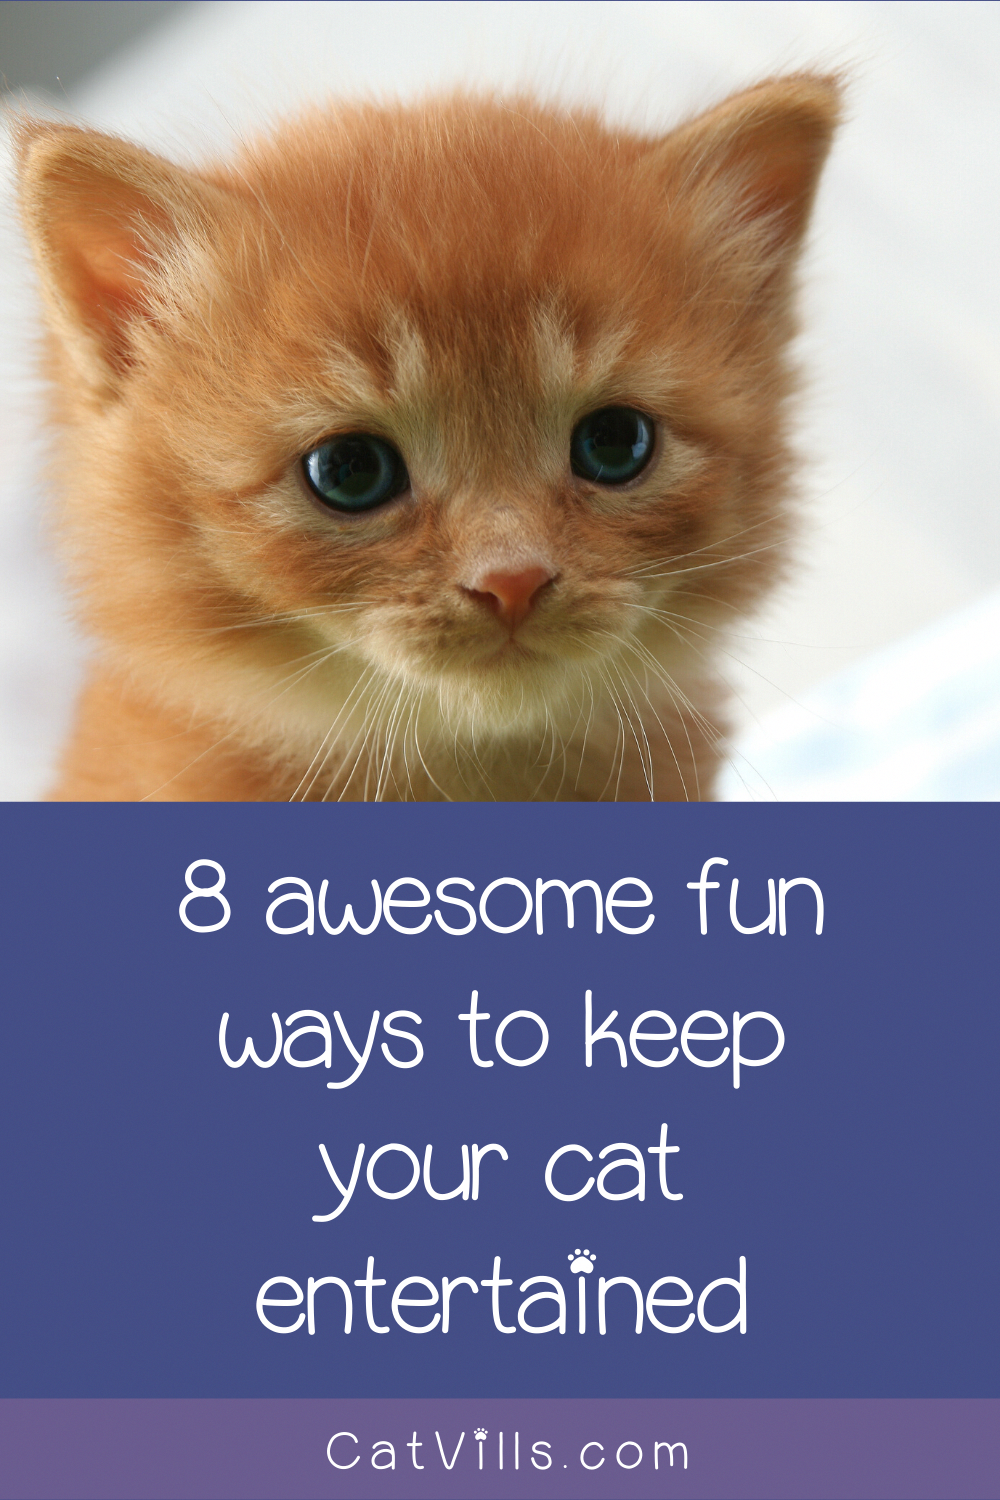 Your Best Cat Training Tips And Tricks In 2020 Cat Training Pet Care Dogs Cats